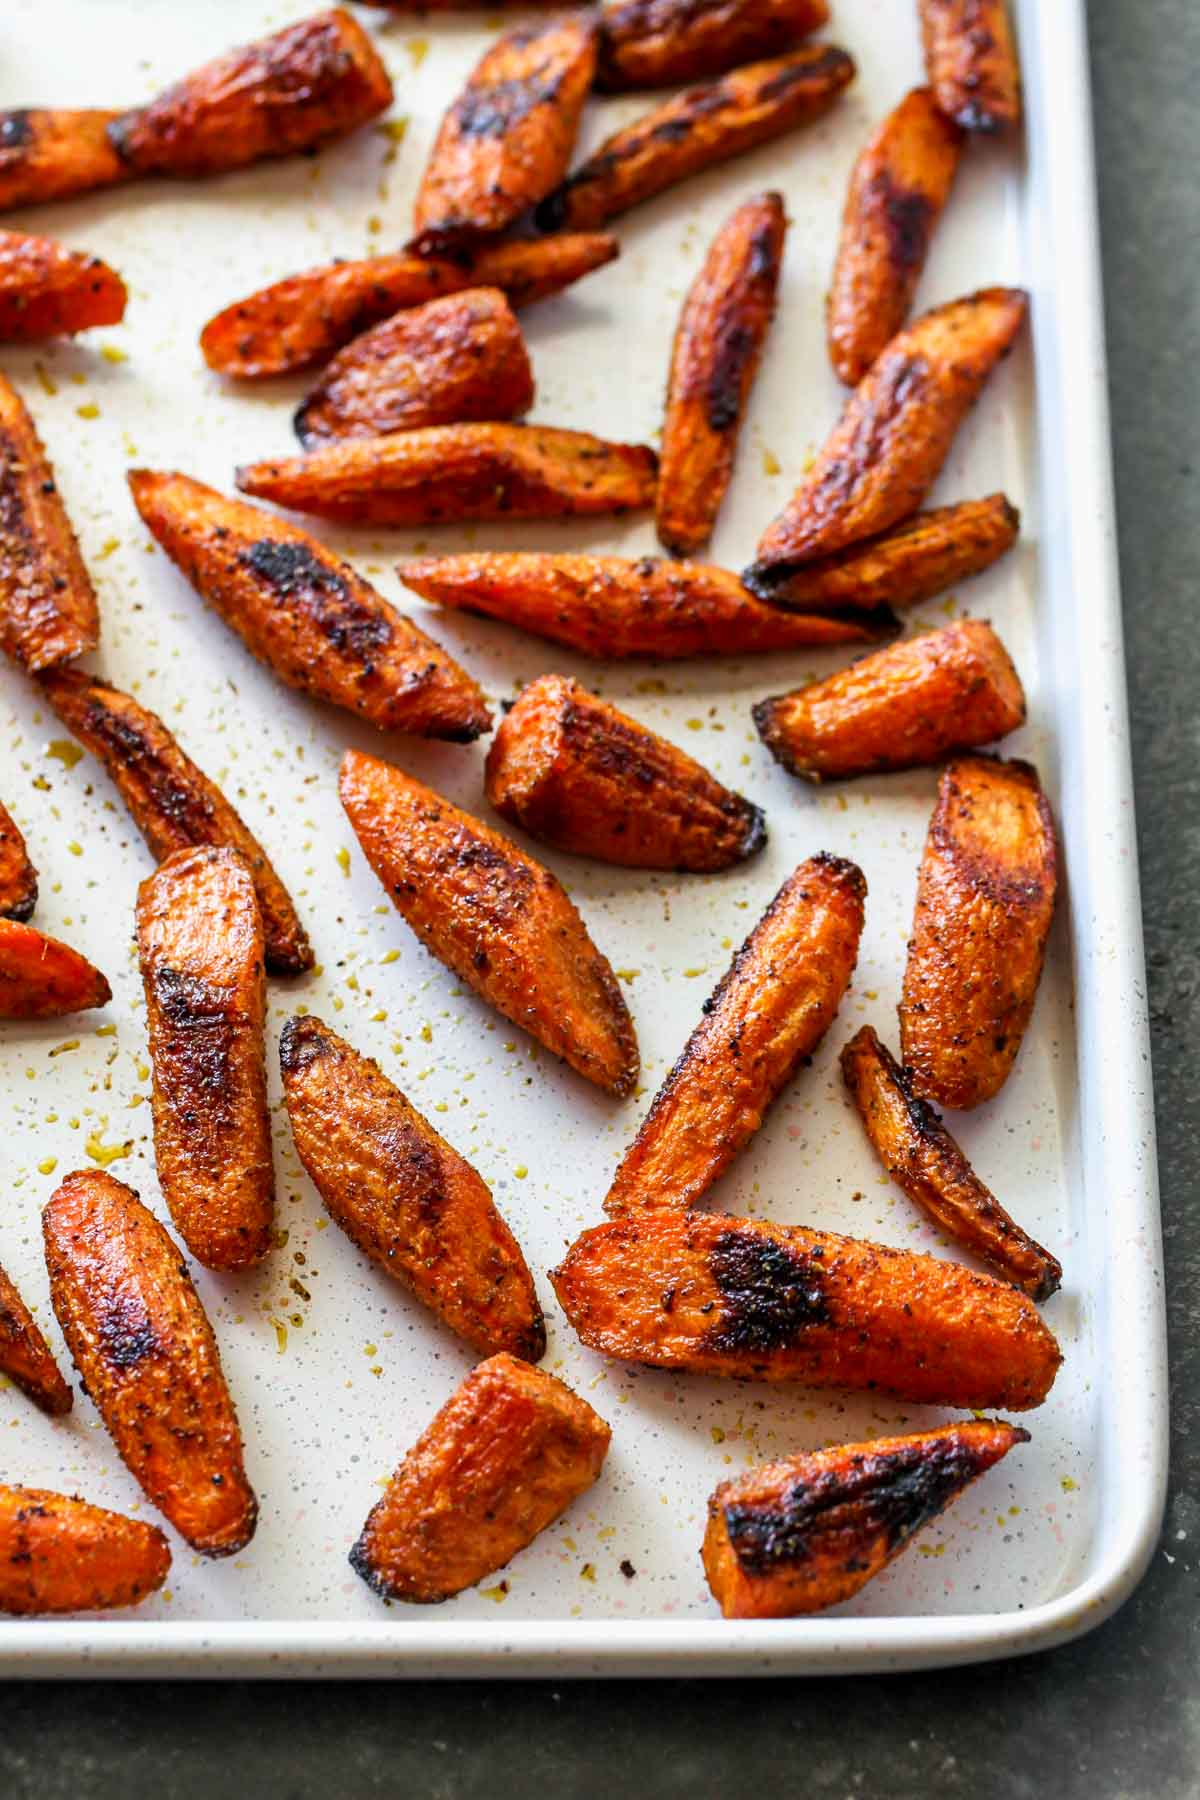 Roasted carrots on a white baking sheet